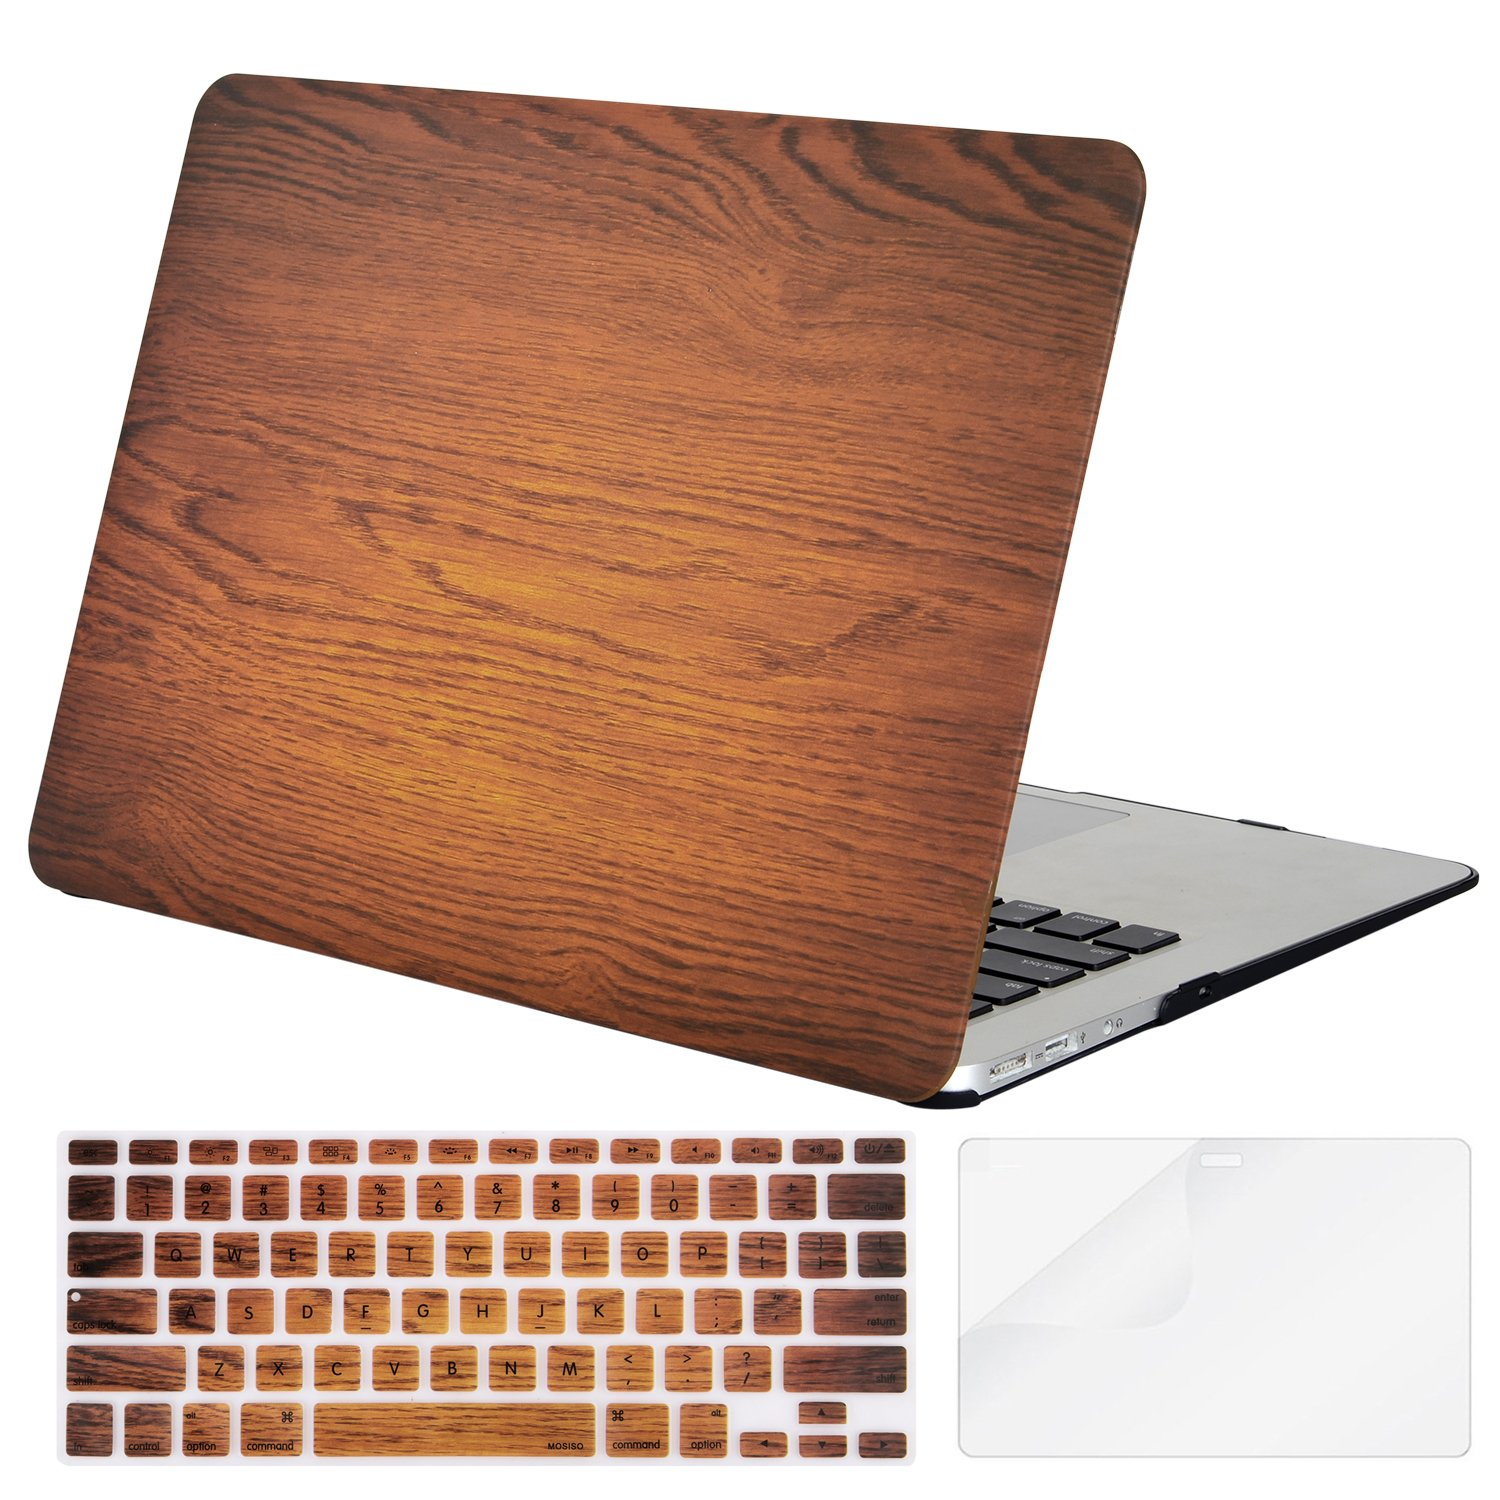 Mosiso Plastic Hard Case with Keyboard Cover with Screen Protector for MacBook Air 13 inch (Model: A1369 and A1466 ), Wood Grain